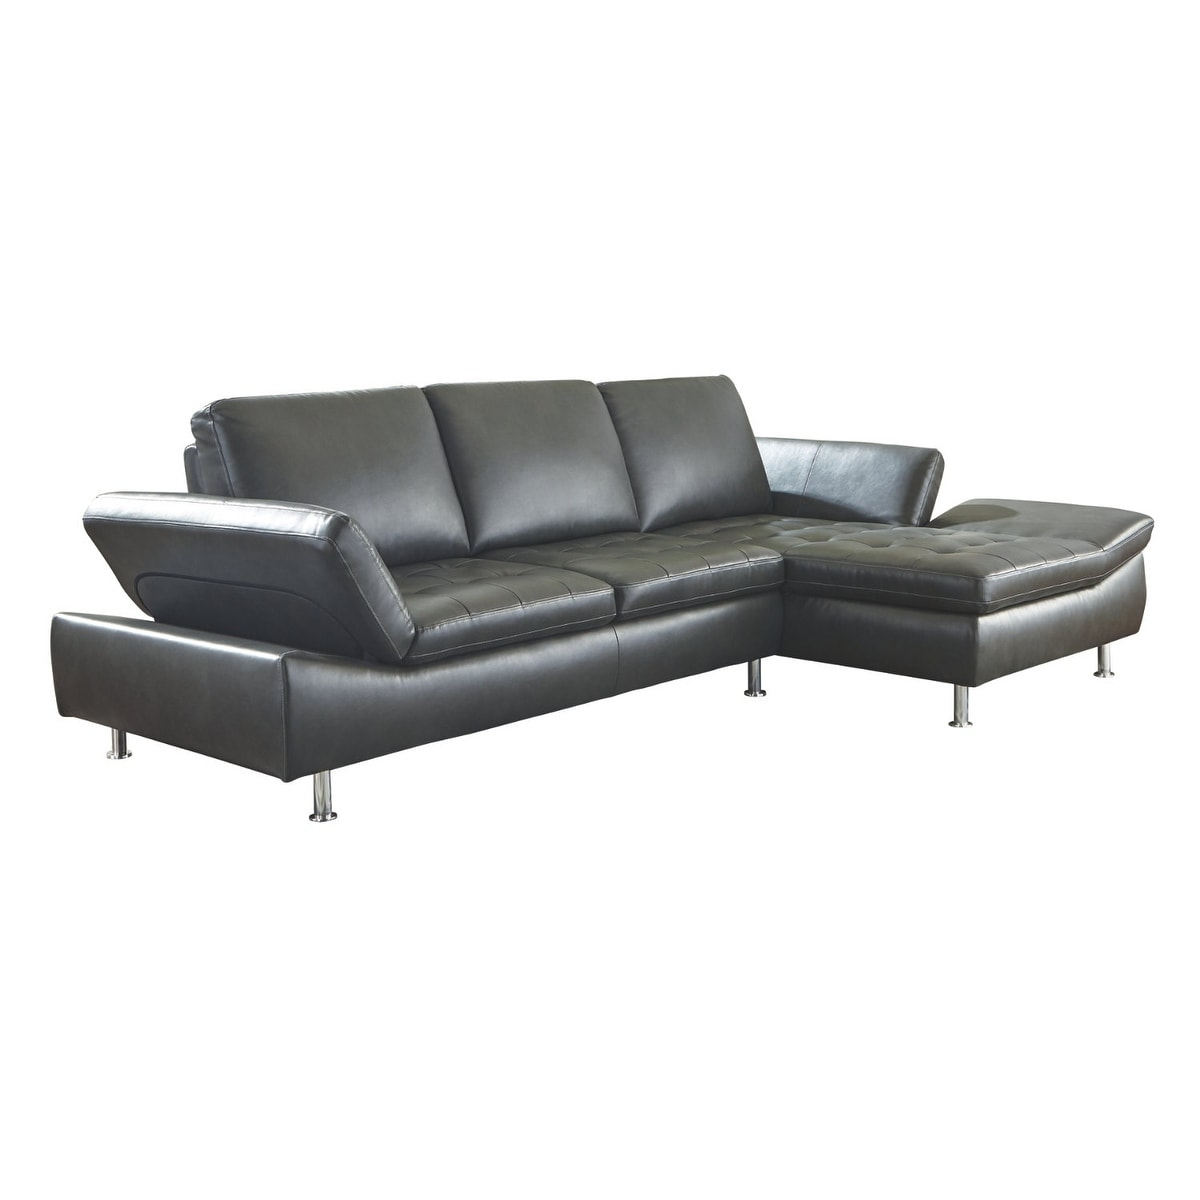 Carrnew 2-Piece Sectional - LAF Loveseat and RAF Corner Chaise